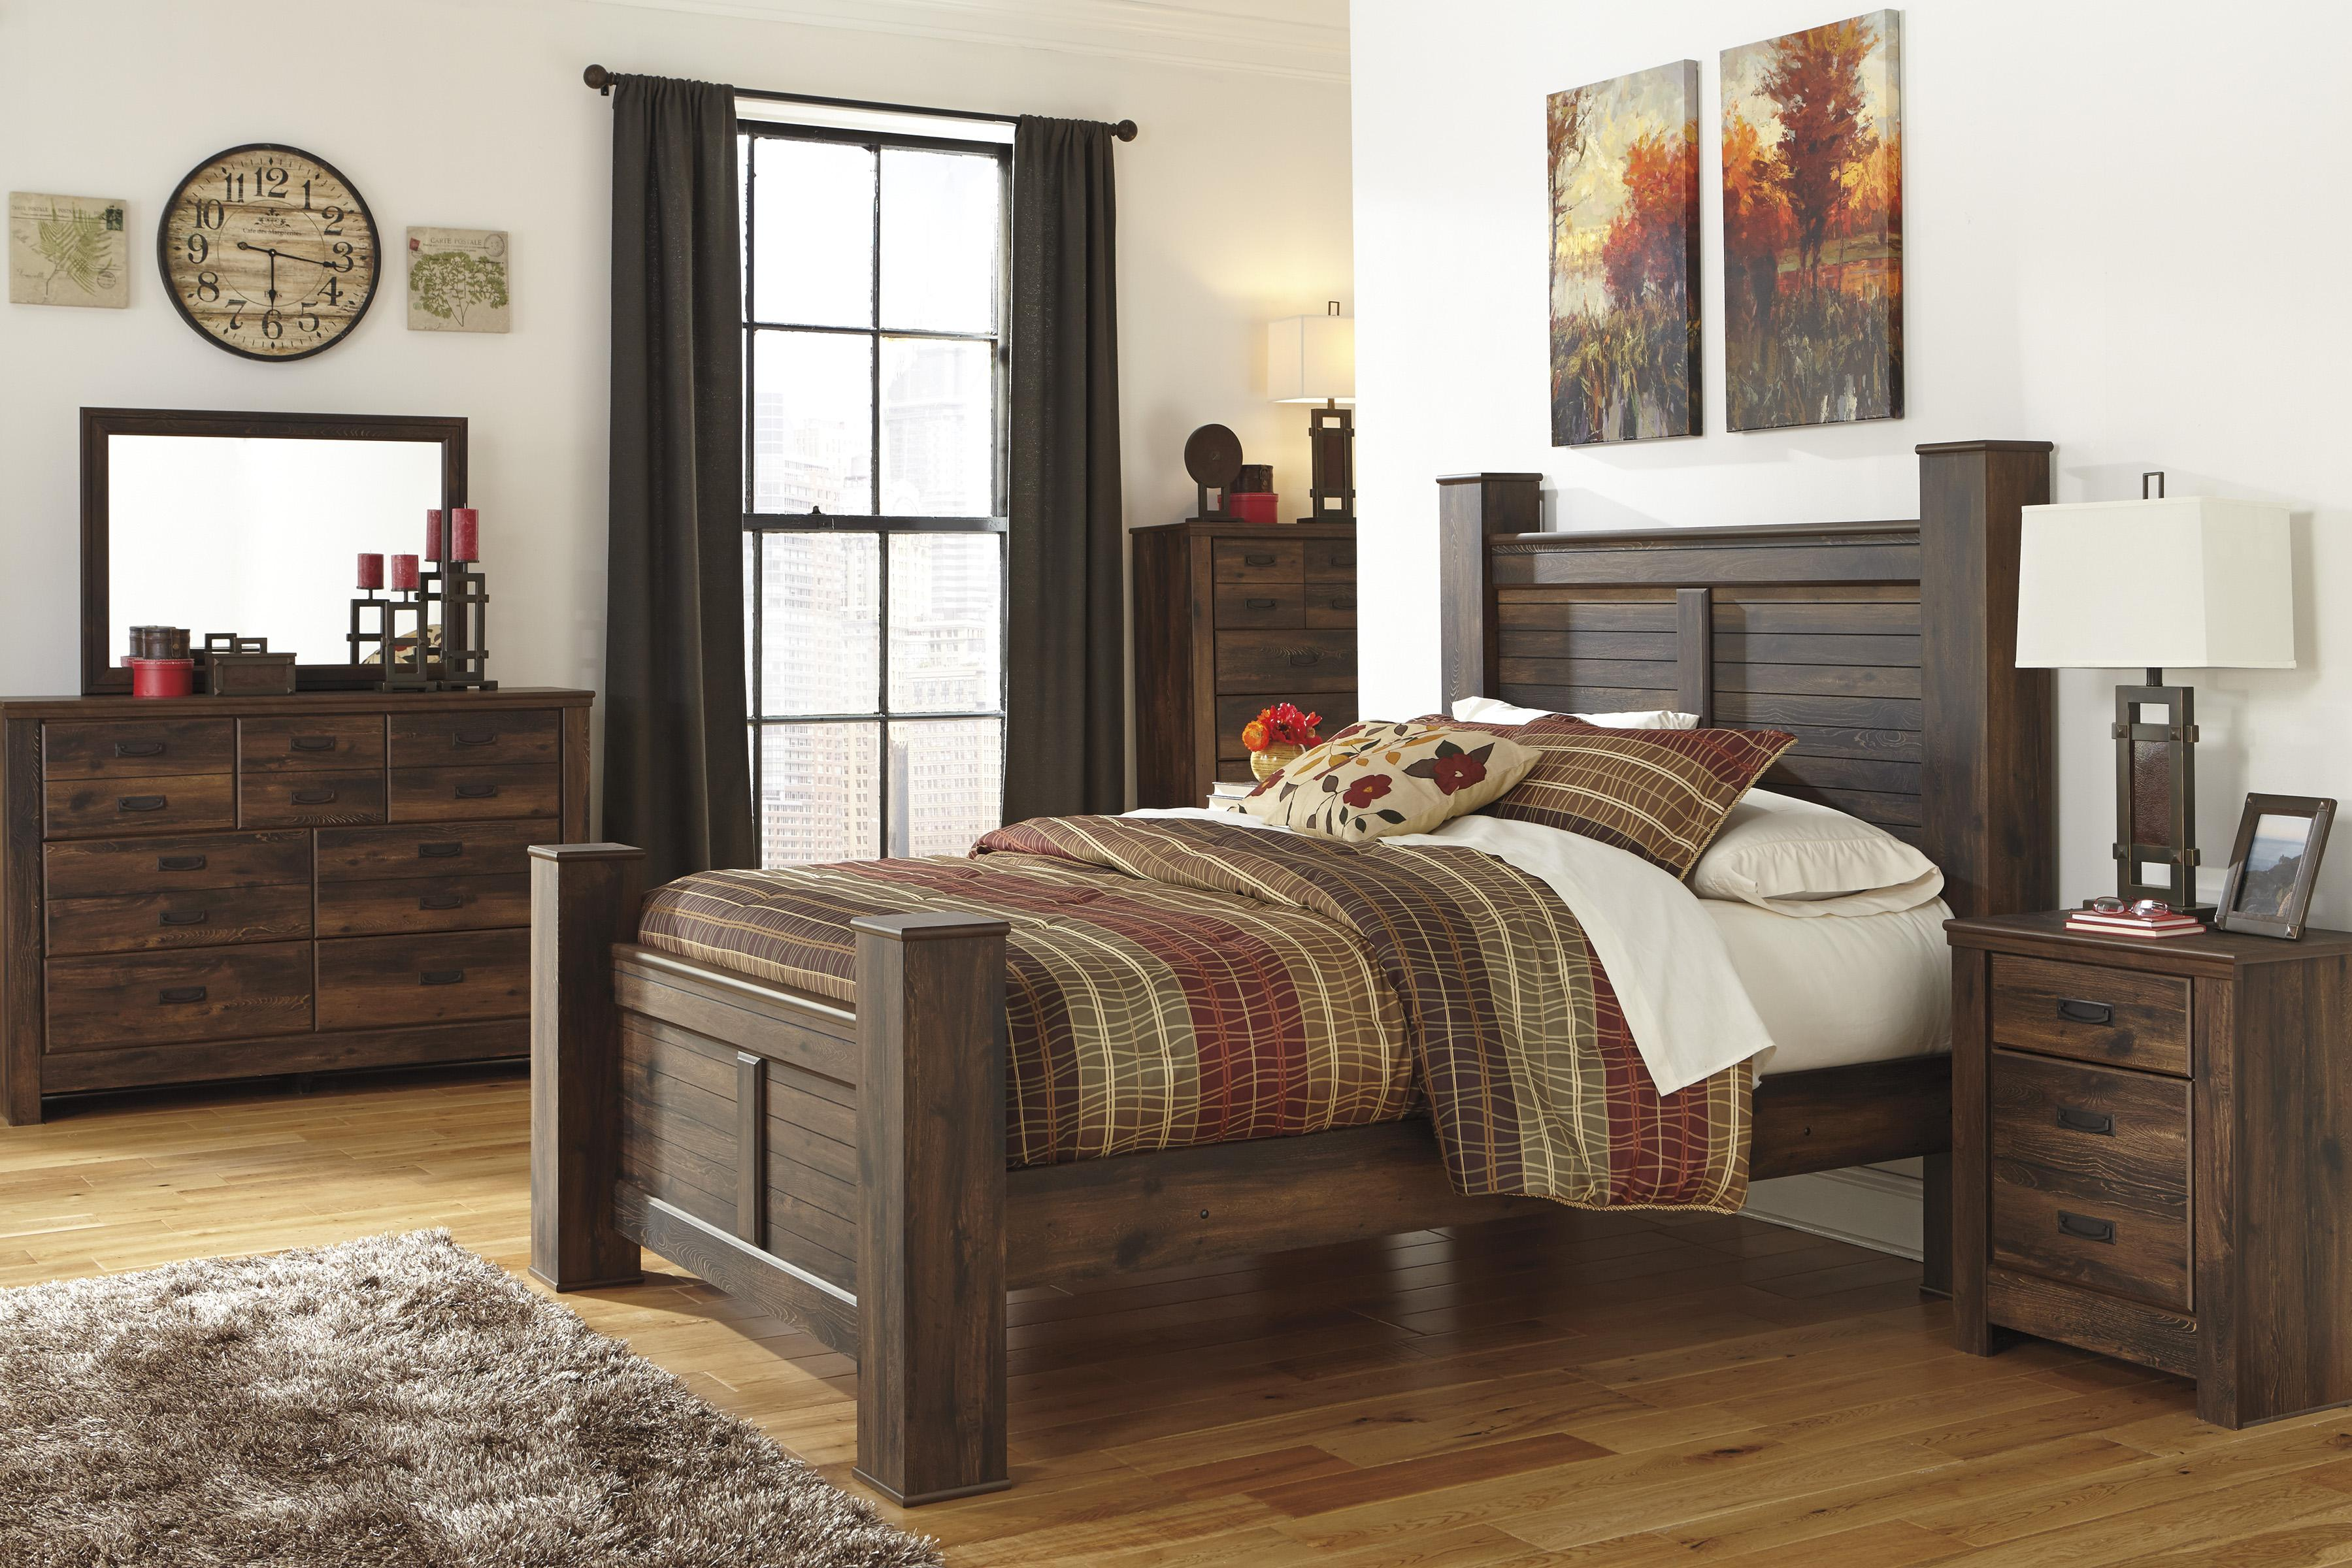 Signature Design by Ashley Quinden Queen Bedroom Group - Item Number: B246 Q Bedroom Group 2